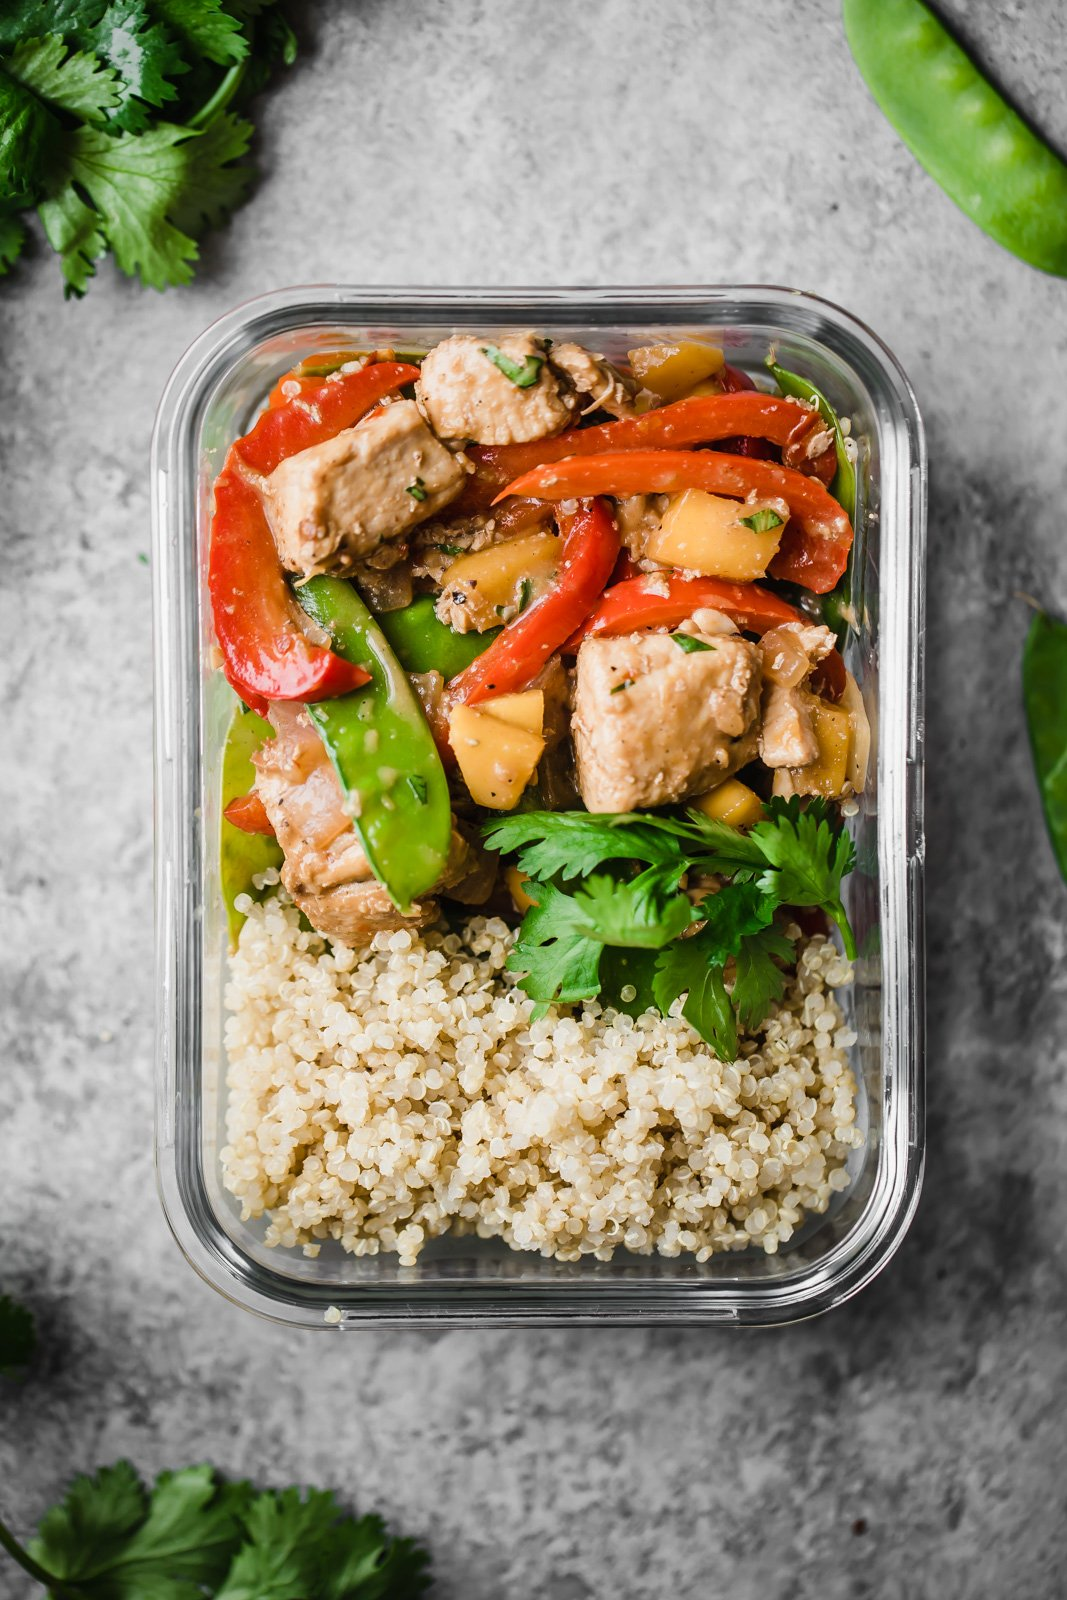 Deliciously flavorful mango chicken stir fry made in one pan with plenty of bright veggies. This easy stir fry is protein-packed and perfect for meal prep! Serve with quinoa, brown rice or cauliflower rice for a full meal.